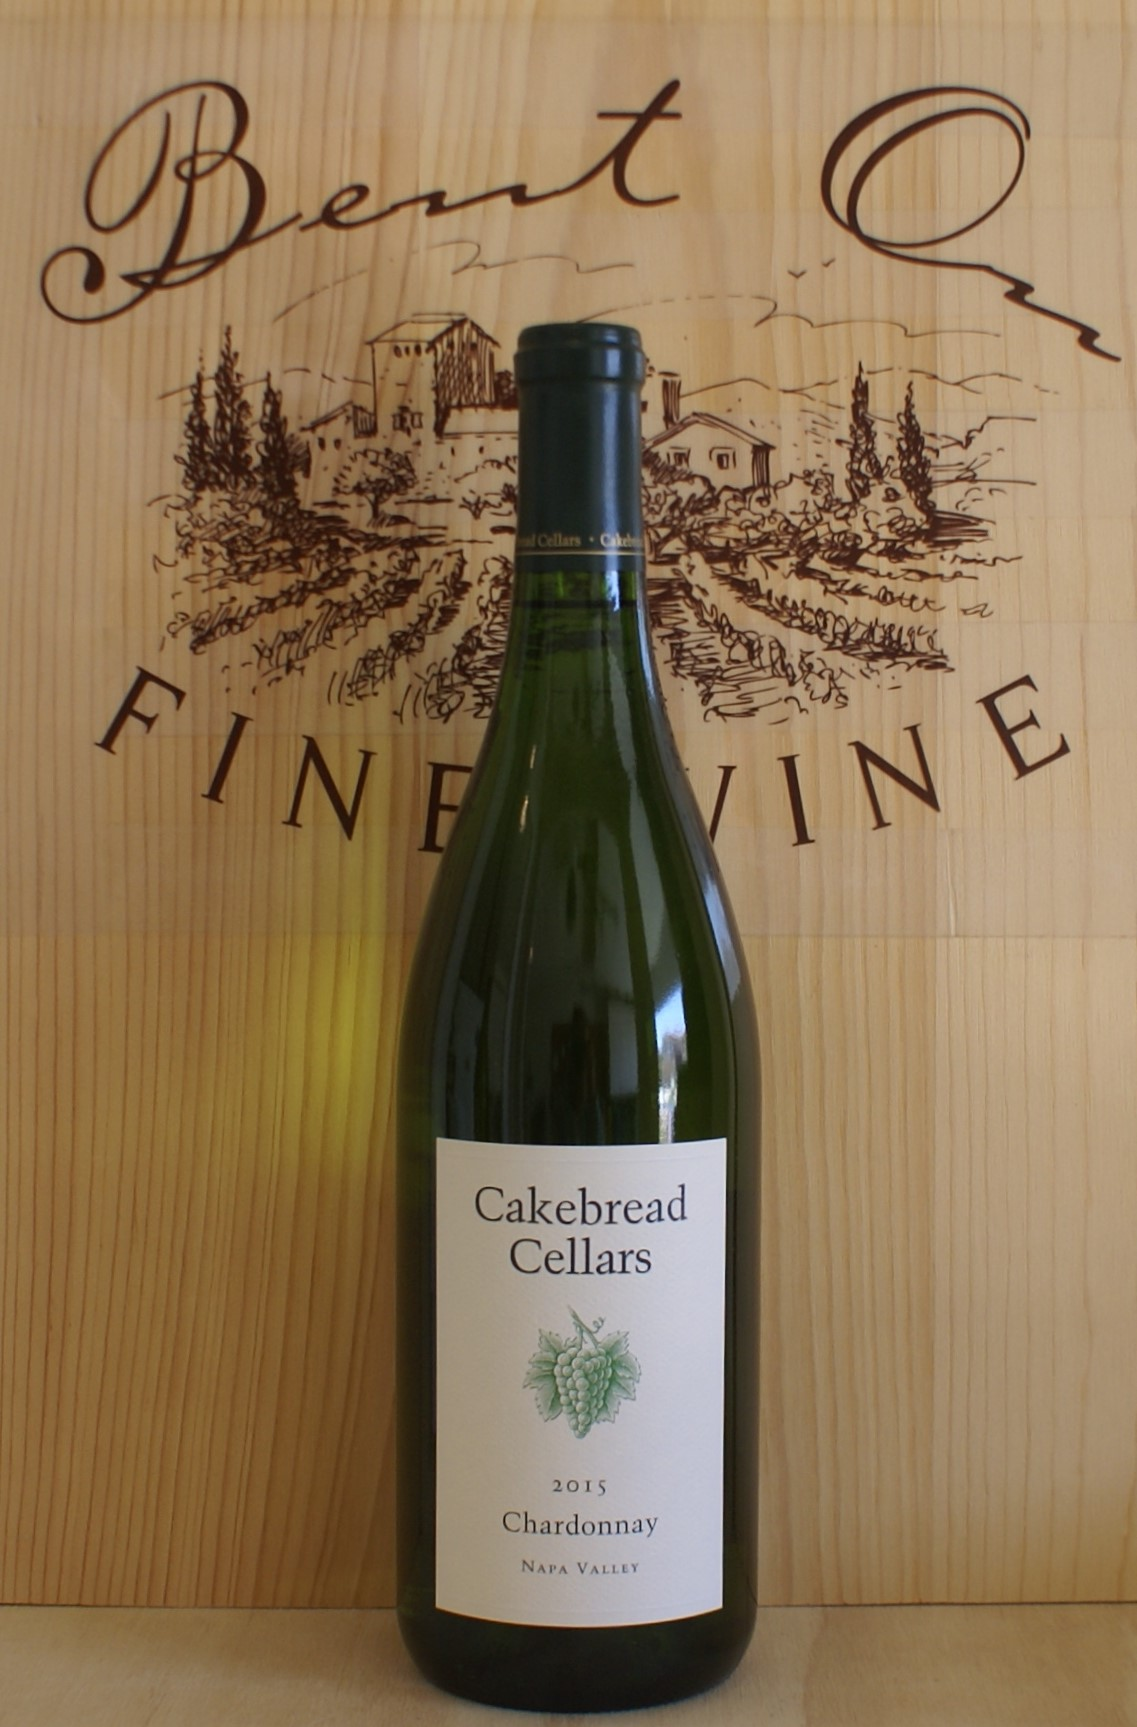 Cakebread Cellars Chardonnay Napa Valley 2015 & Cakebread Cellars Chardonnay Napa Valley 2015 - Bent on Fine Wine